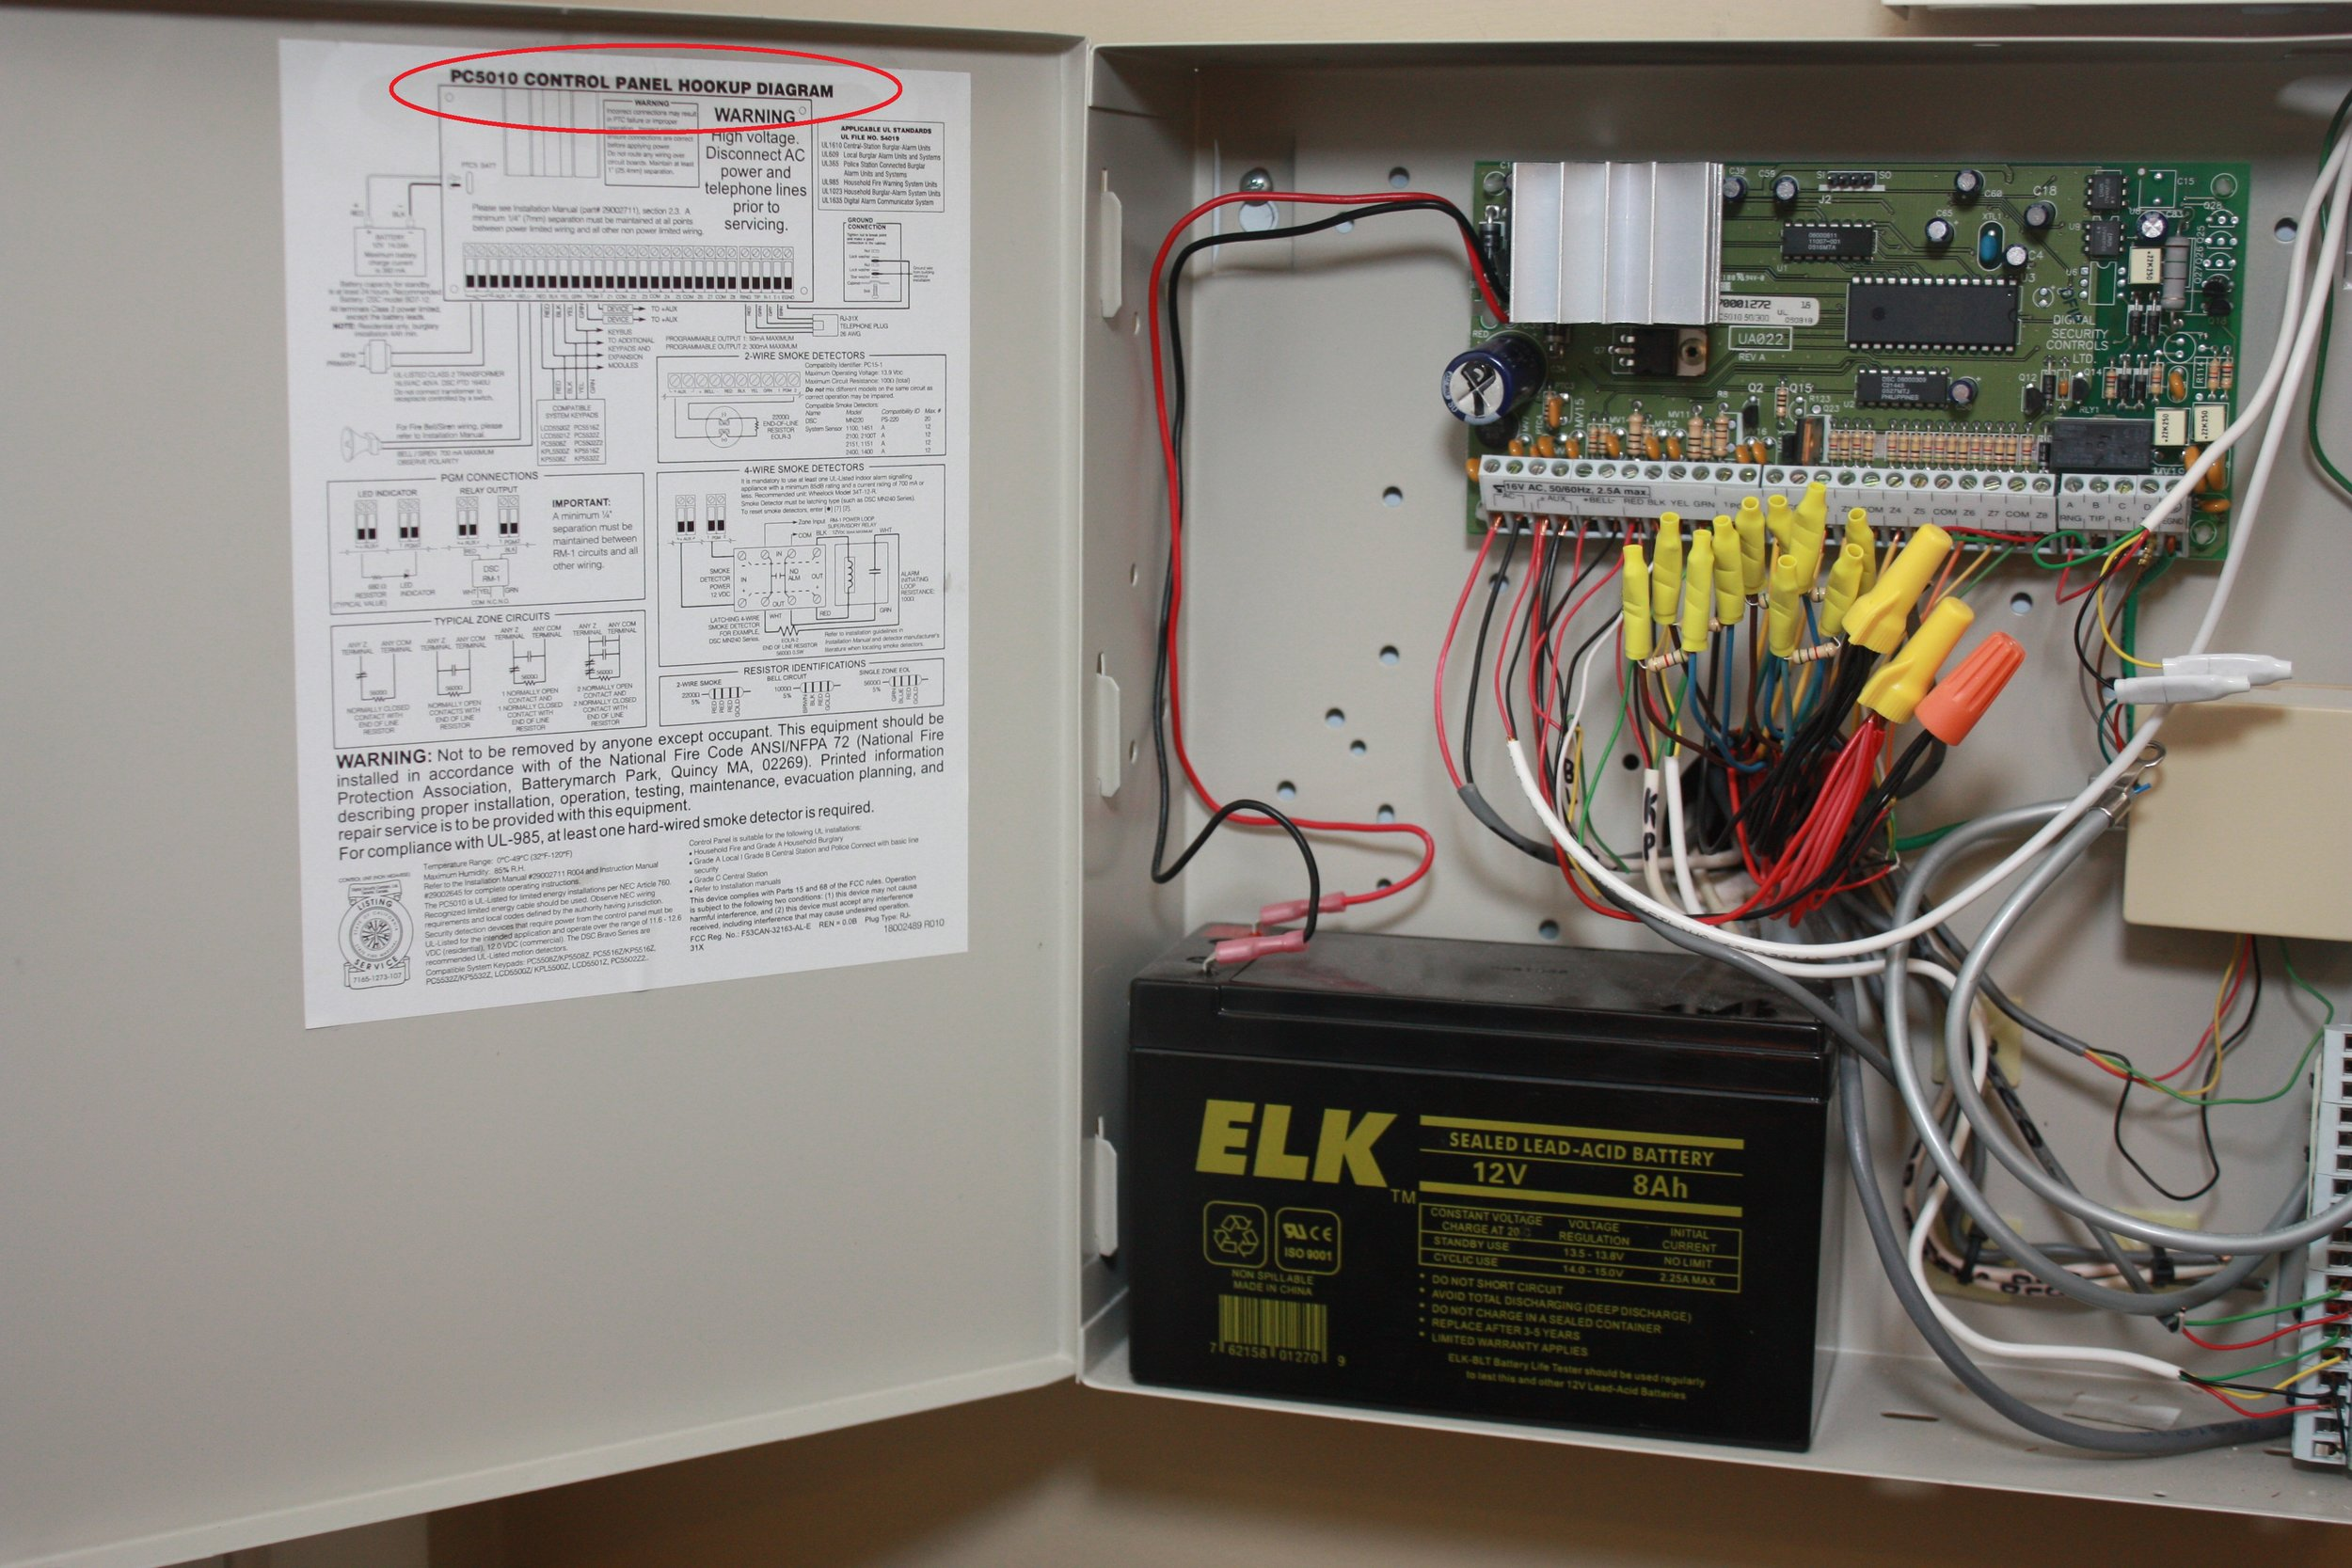 Inside the 5501 DSC Power Series Fixed English alarm control box showing the schematic and circuit board - NCA Alarms Nashville TN